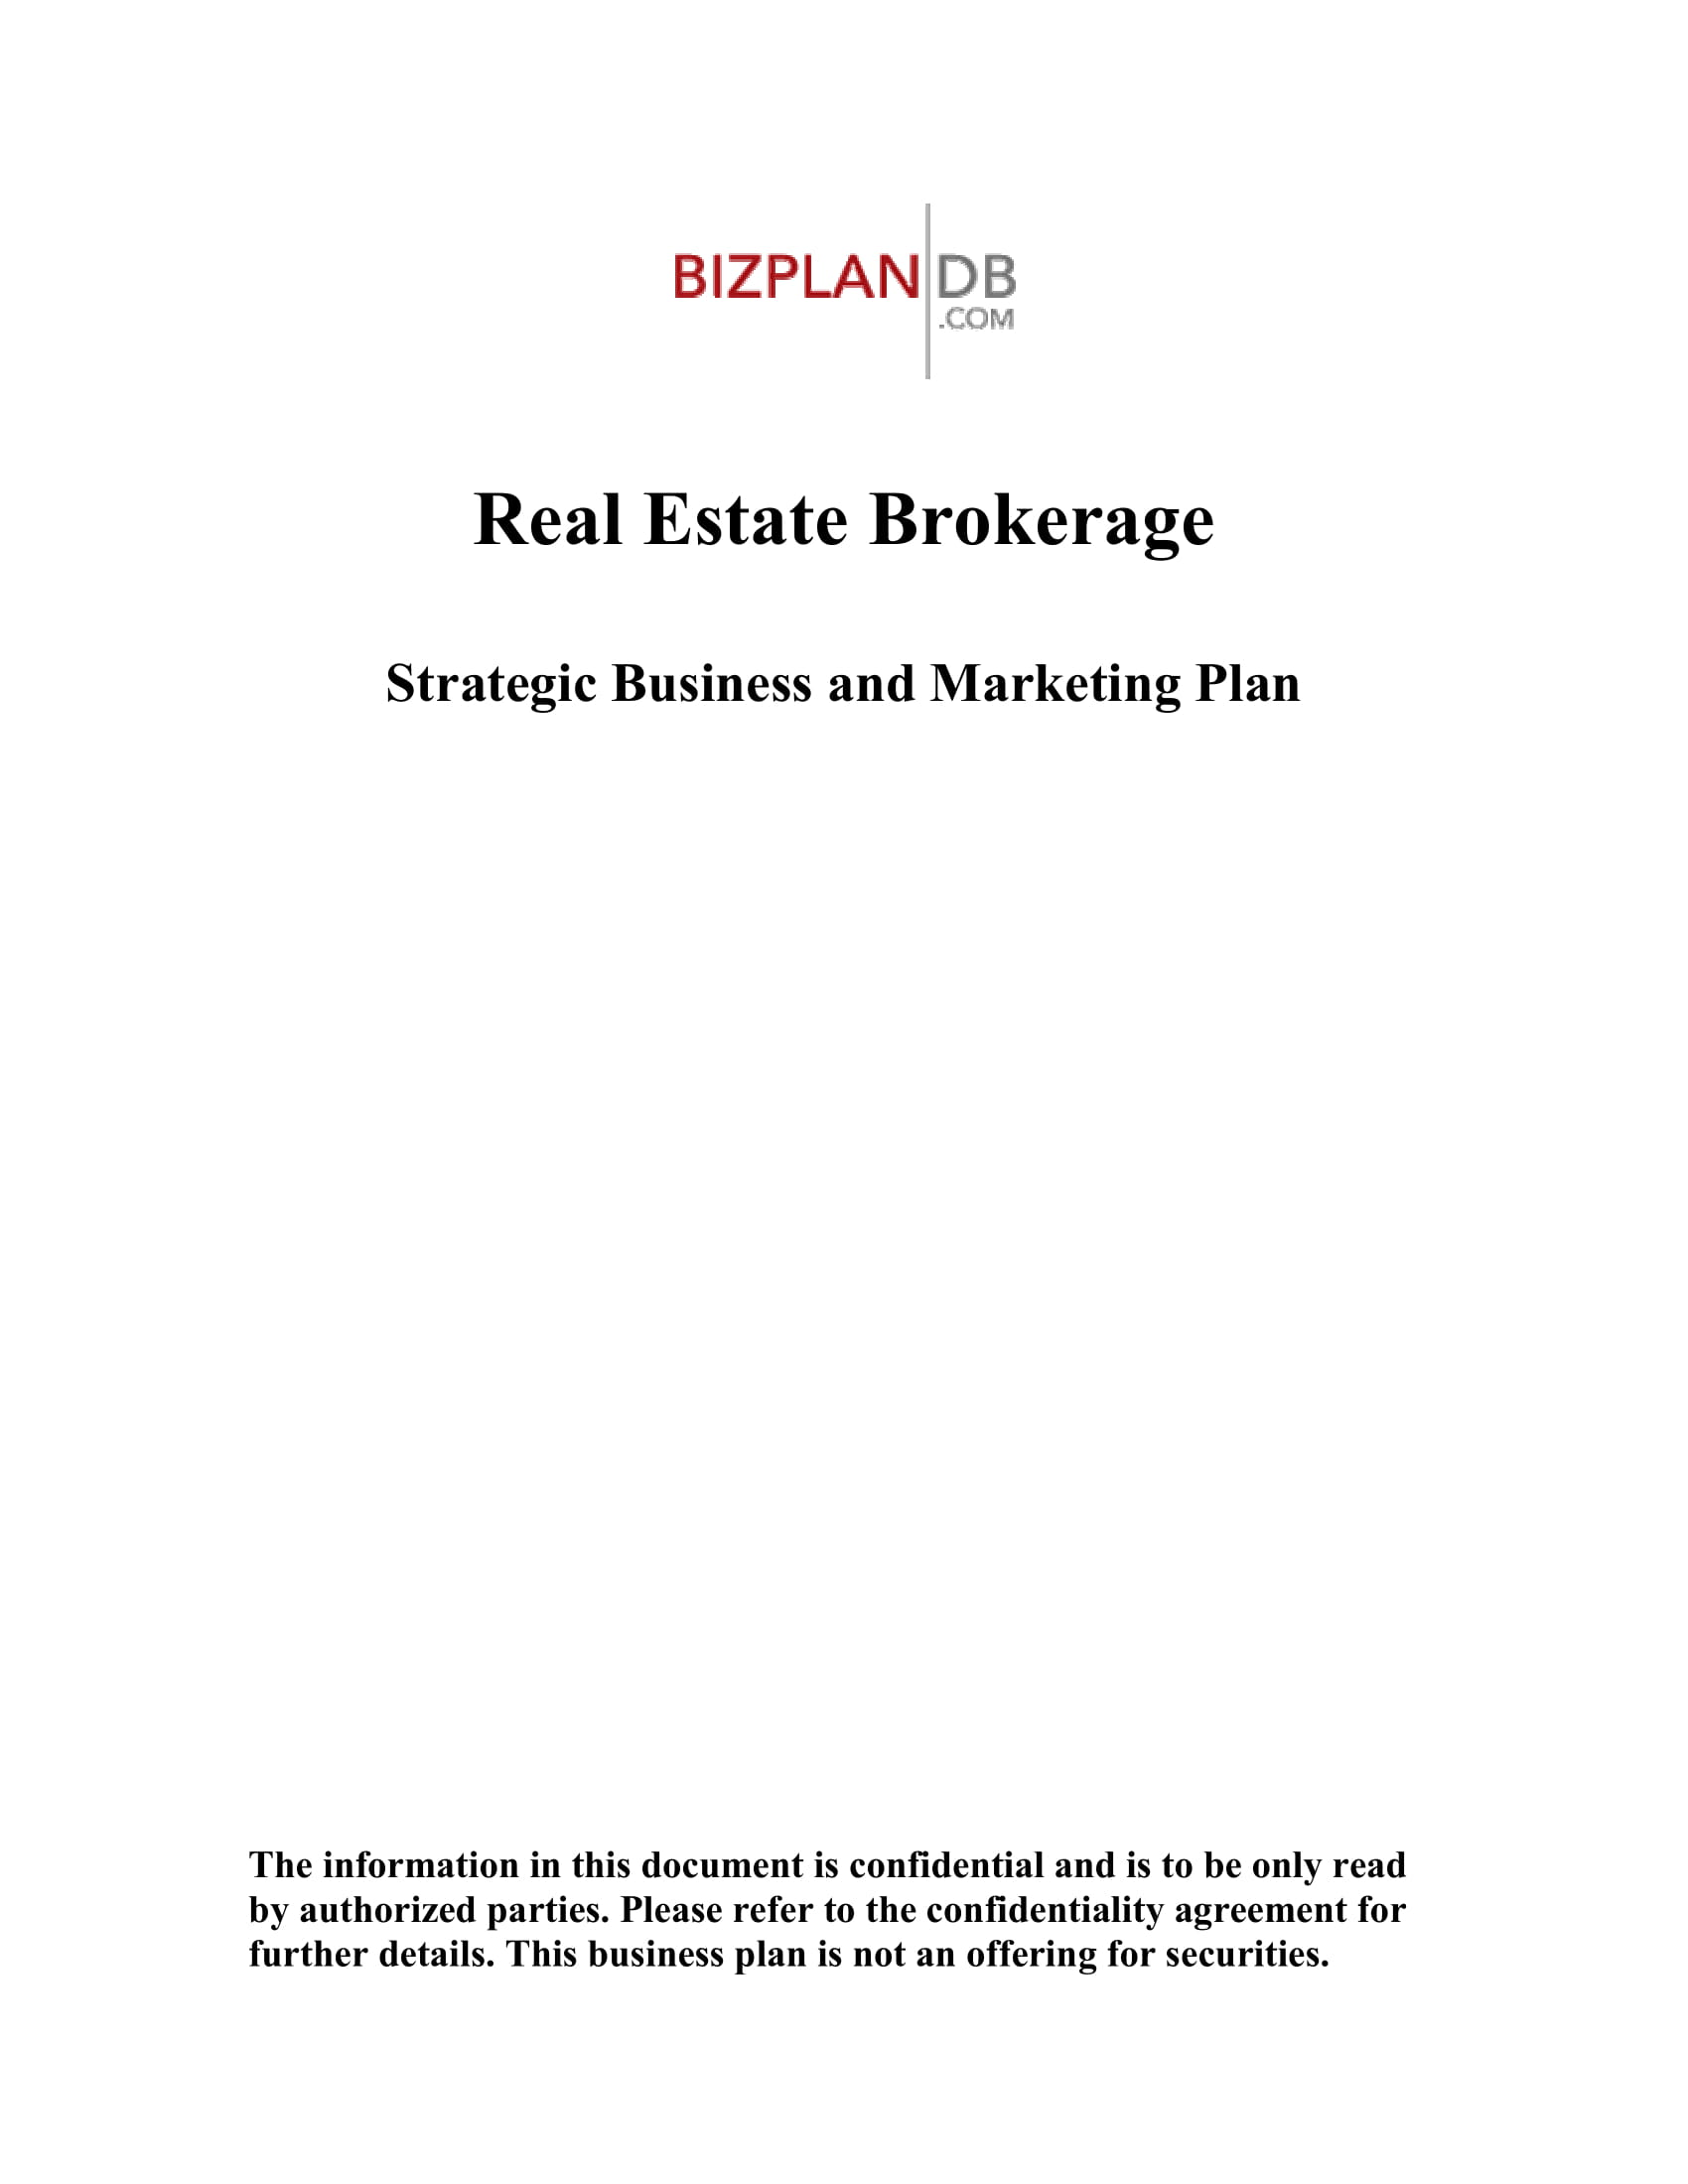 real estate brokerage strategic business and marketing plan for real estate selling purposes 01